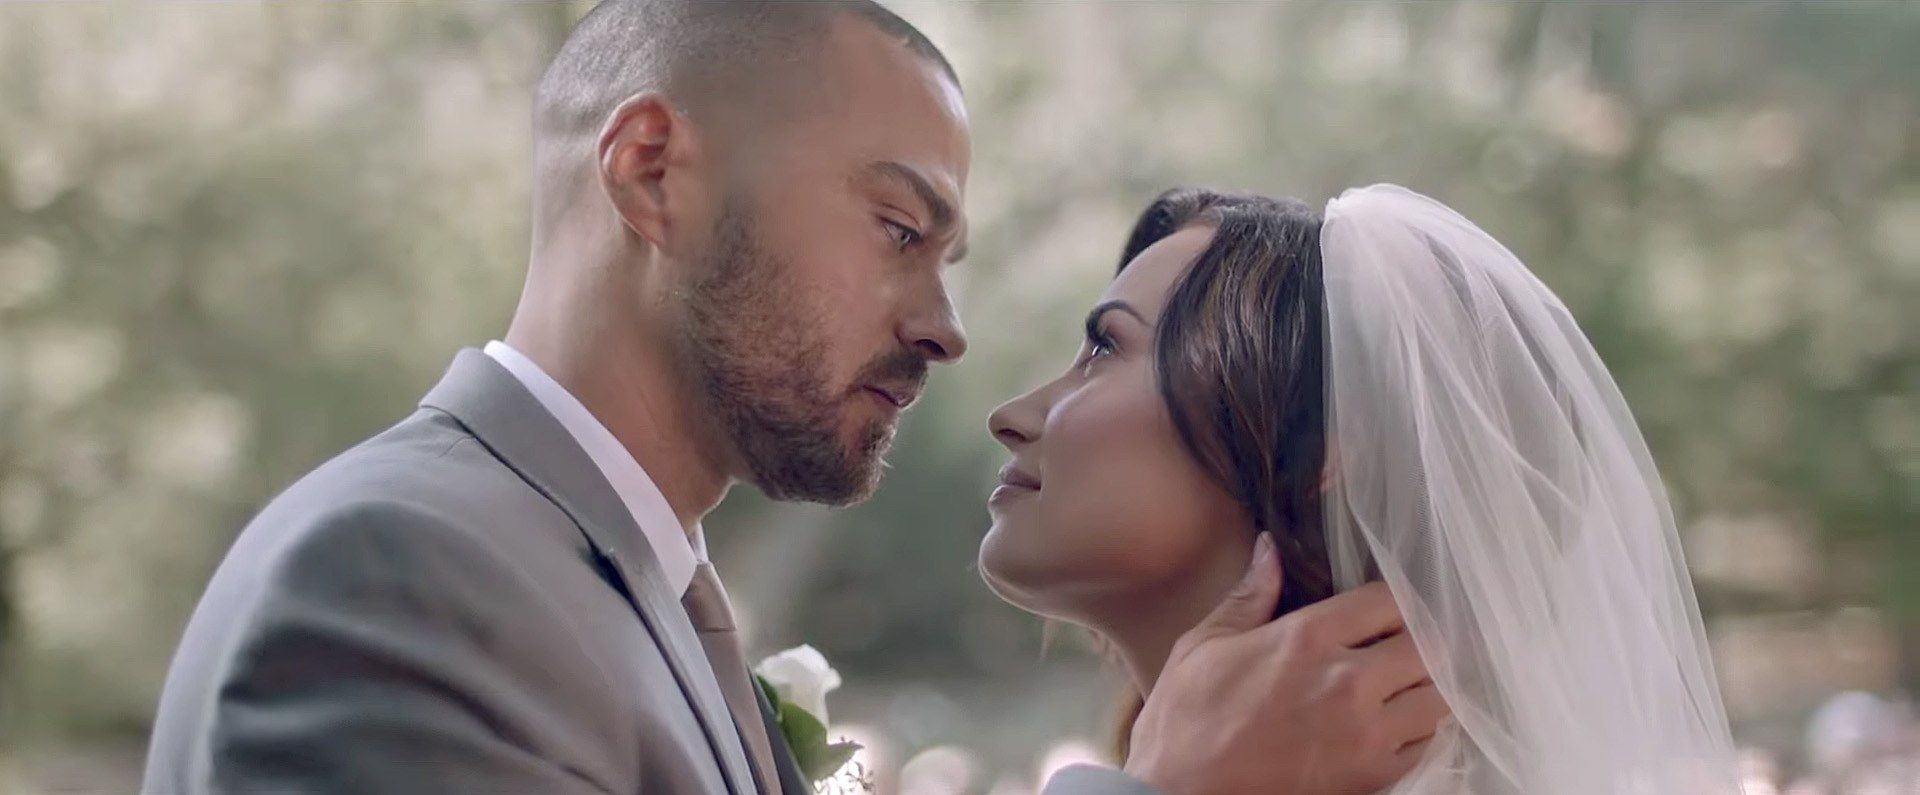 Demi Lovato Is Walking Down The Aisle In A Lazaro Wedding Dress Lazaro Wedding Dress Demi Lovato Music Video Jesse Williams